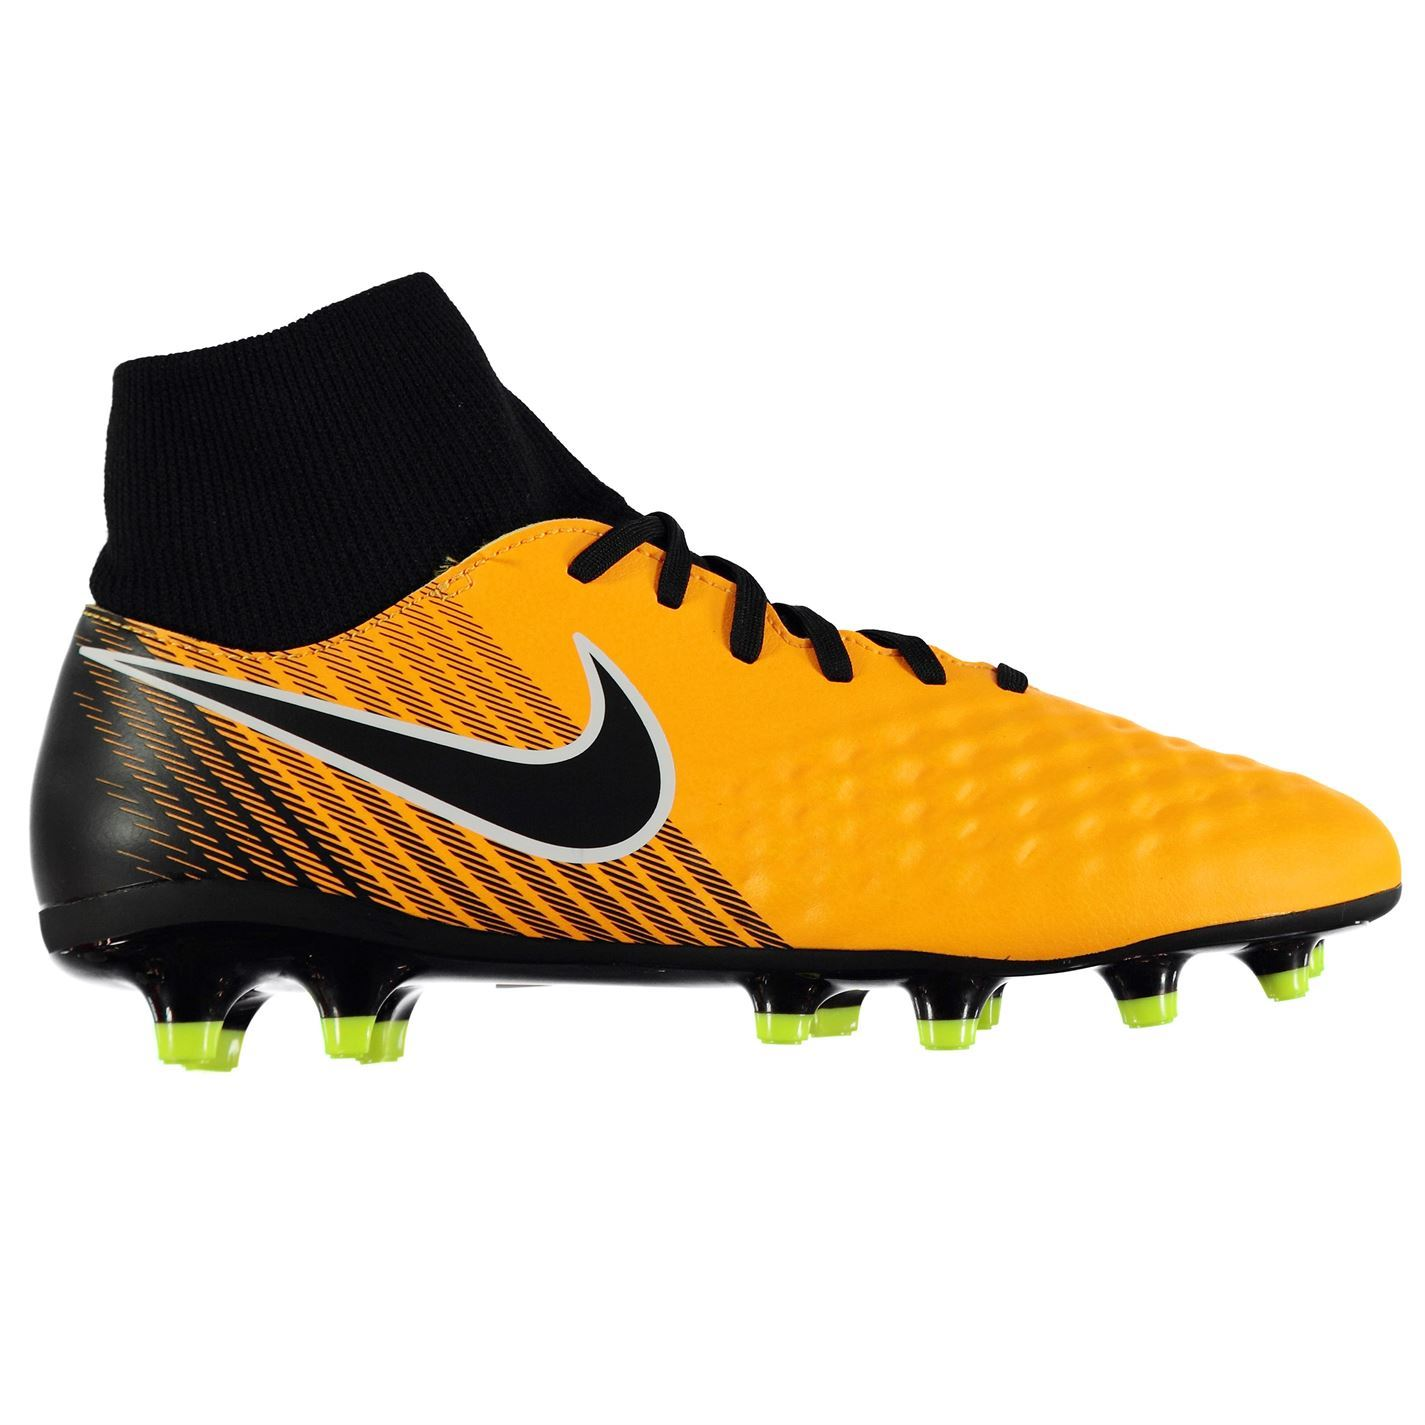 reputable site d54a1 a9bb6 ... Nike Magista Onda II Firm Ground Football Boots Juniors Orange Soccer  Cleats ...